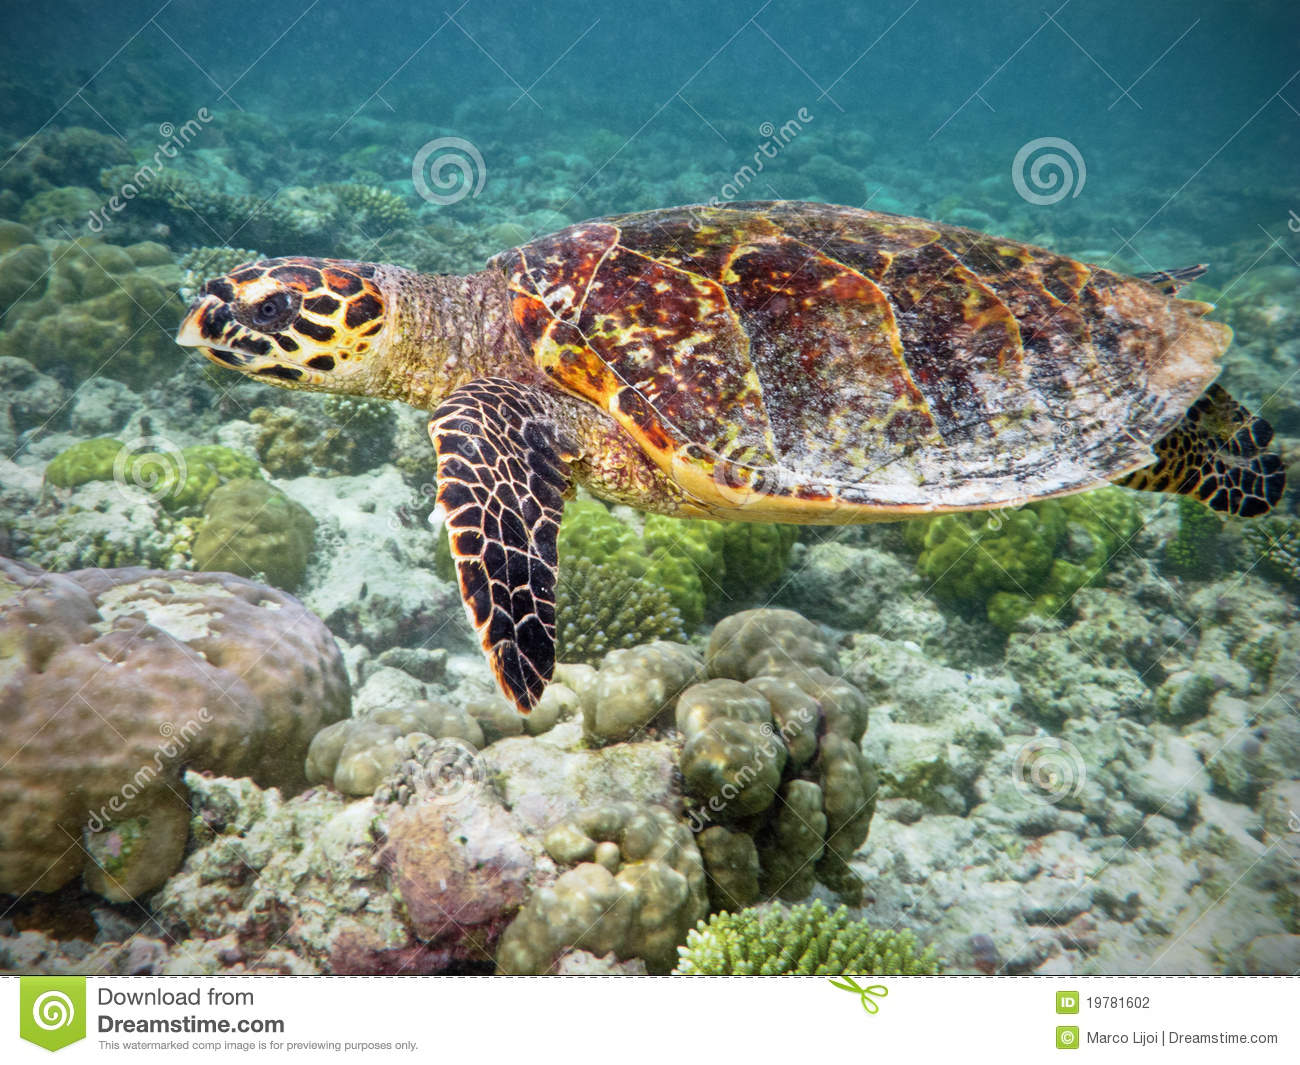 Hawksbill Turtle in coral reef